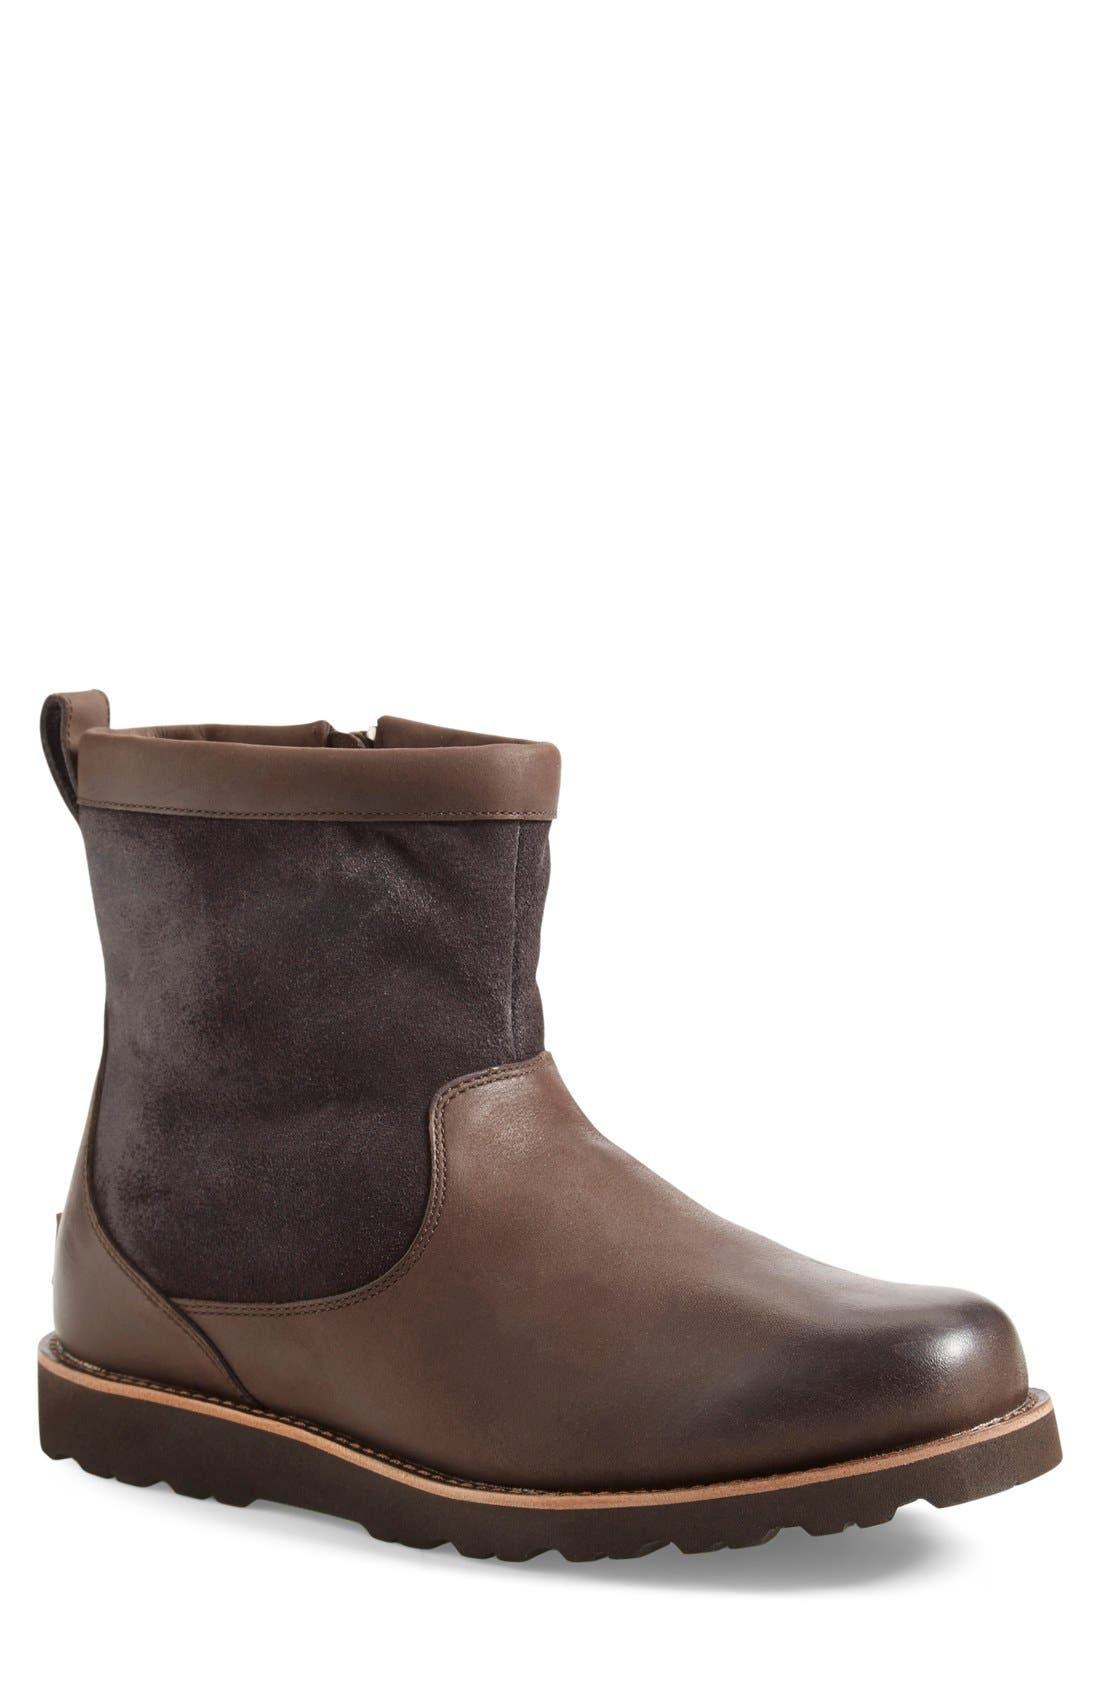 Main Image - UGG® Hendren TL Waterproof Zip Boot (Men)